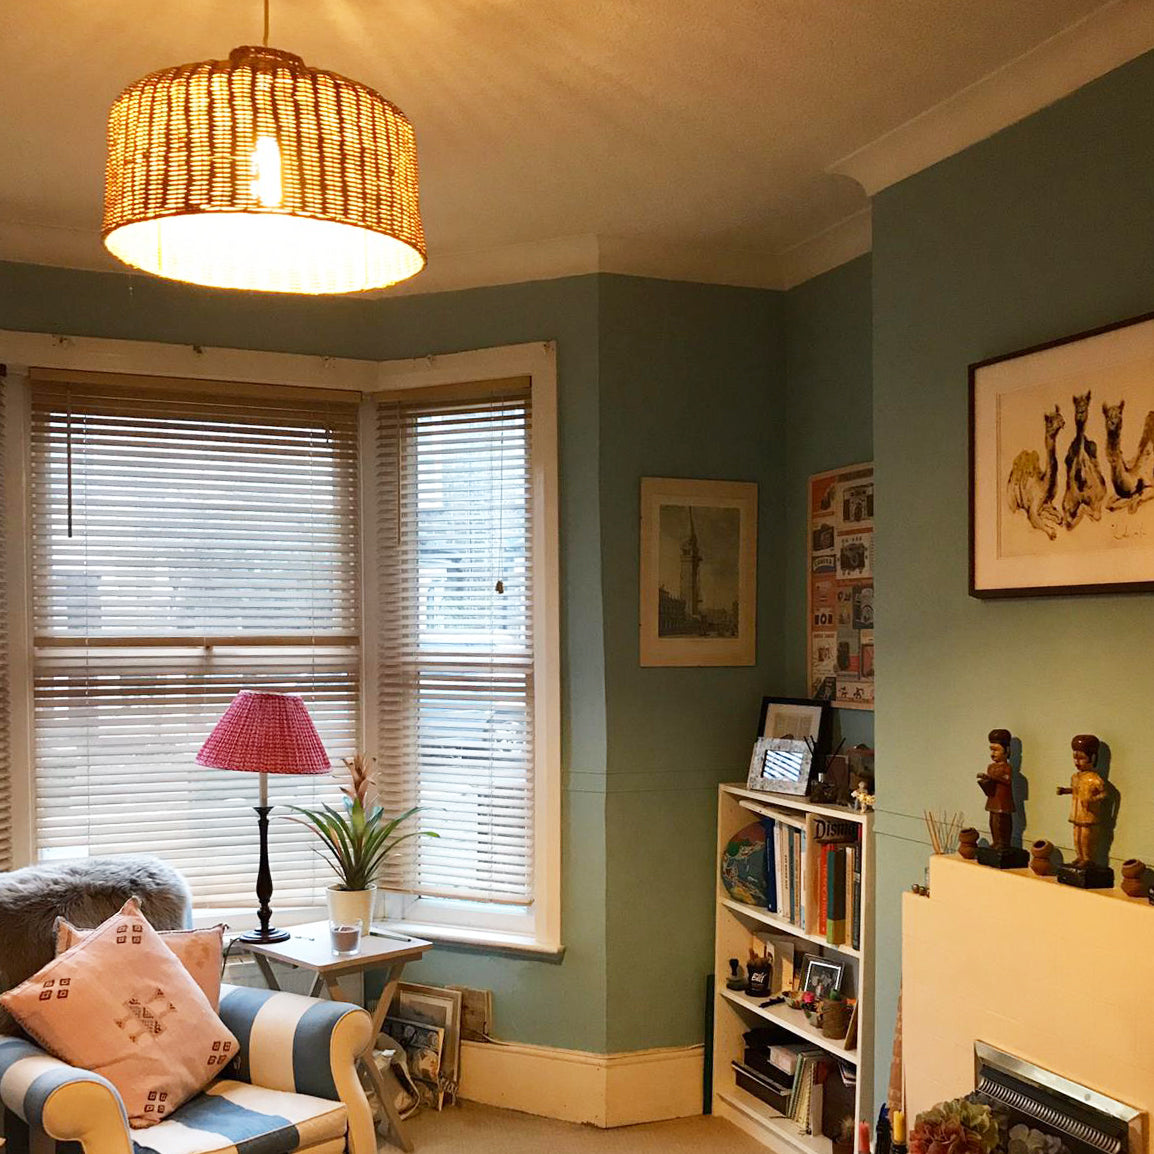 Our Asho Pendant in Sarah's sitting room